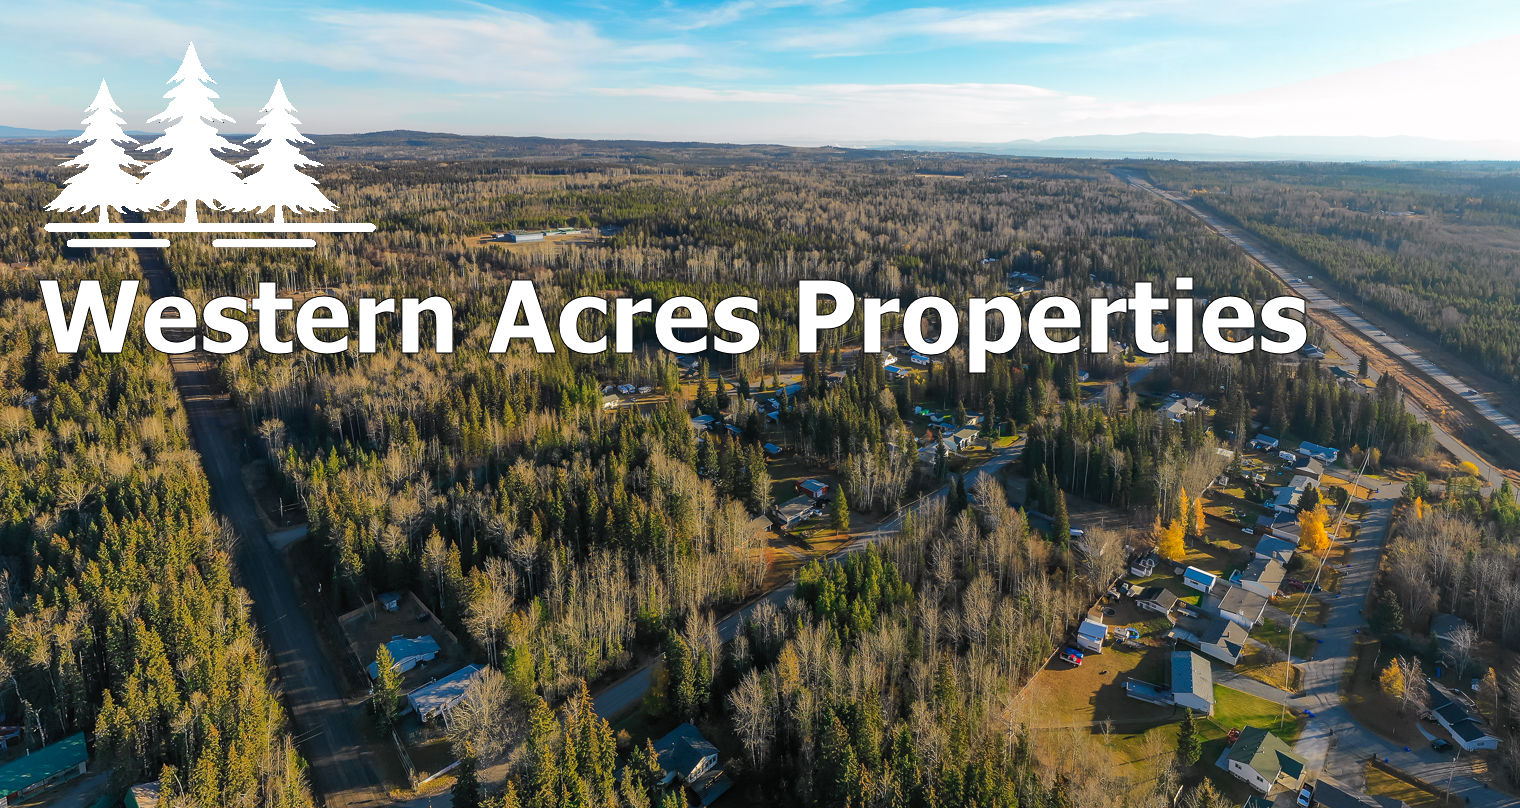 Western Acres Properties